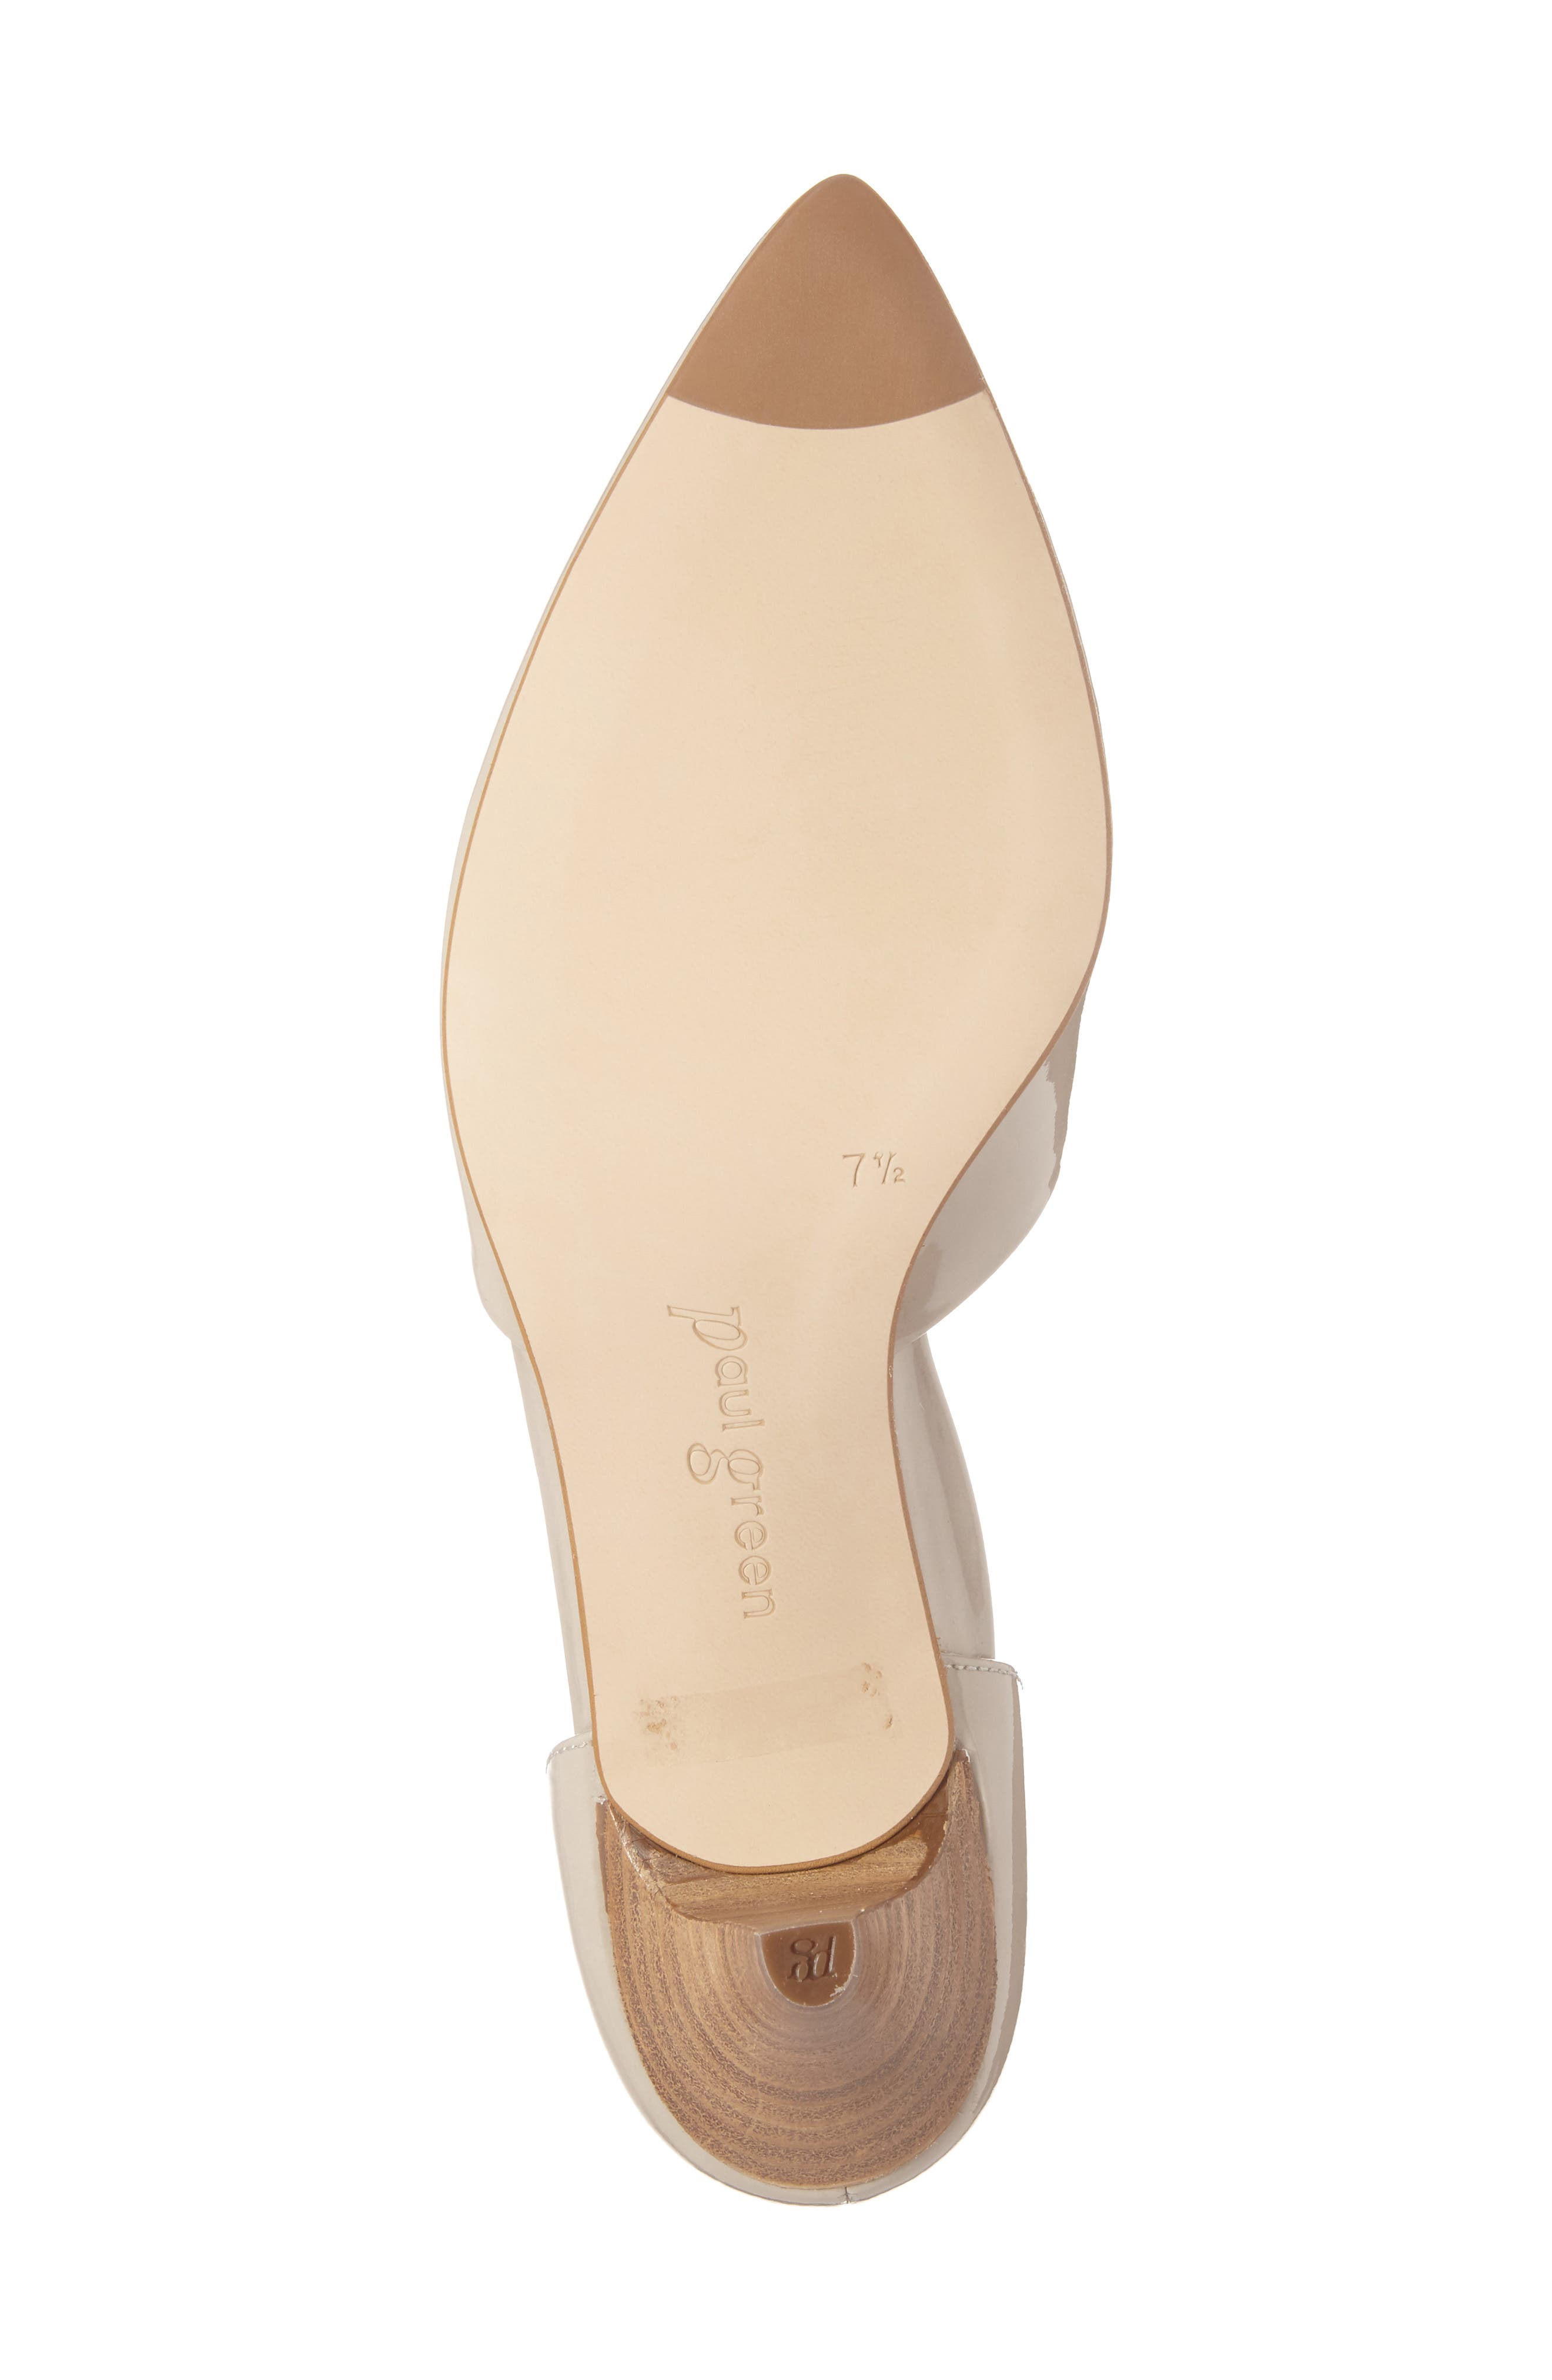 'Julia' d'Orsay Pump,                             Alternate thumbnail 6, color,                             Taupe Patent